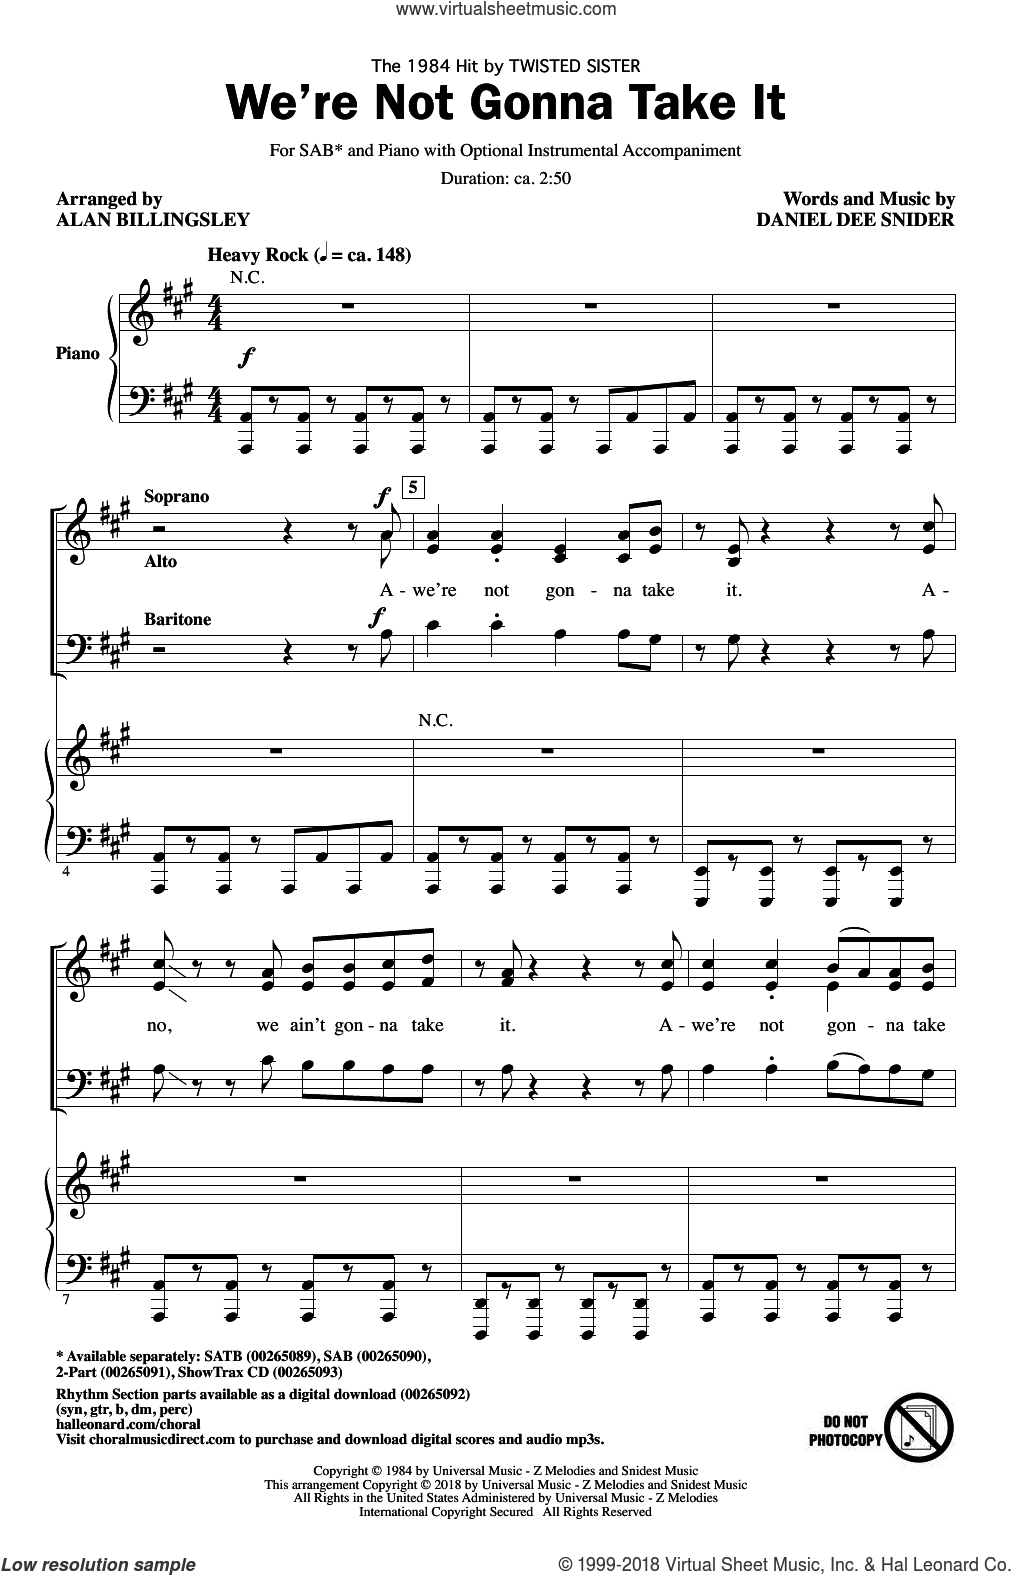 We're Not Gonna Take It sheet music for choir (SAB: soprano, alto, bass) by Alan Billingsley, Twisted Sister and Dee Snider, intermediate skill level